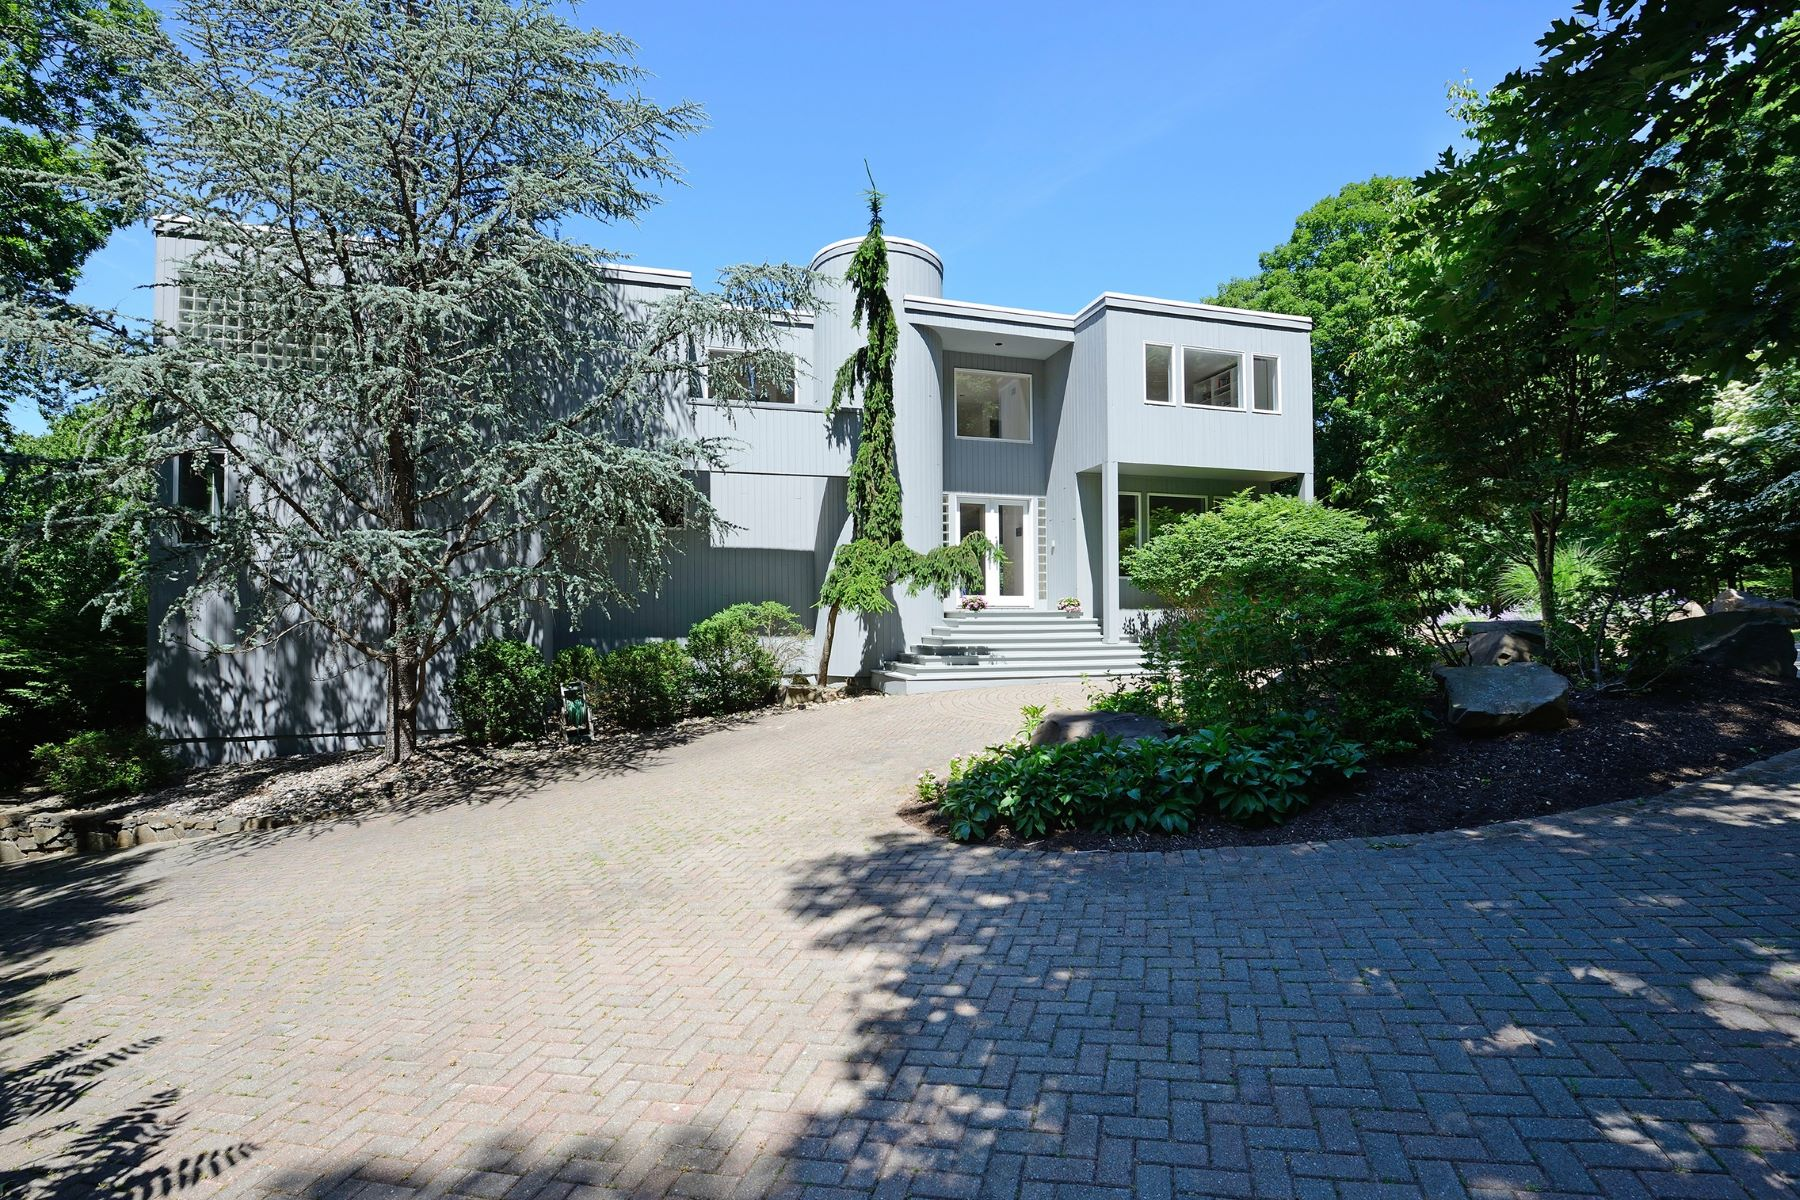 Single Family Home for Sale at Intriguing Modern Home 635 South Mountain Road New City, New York, 10956 United States